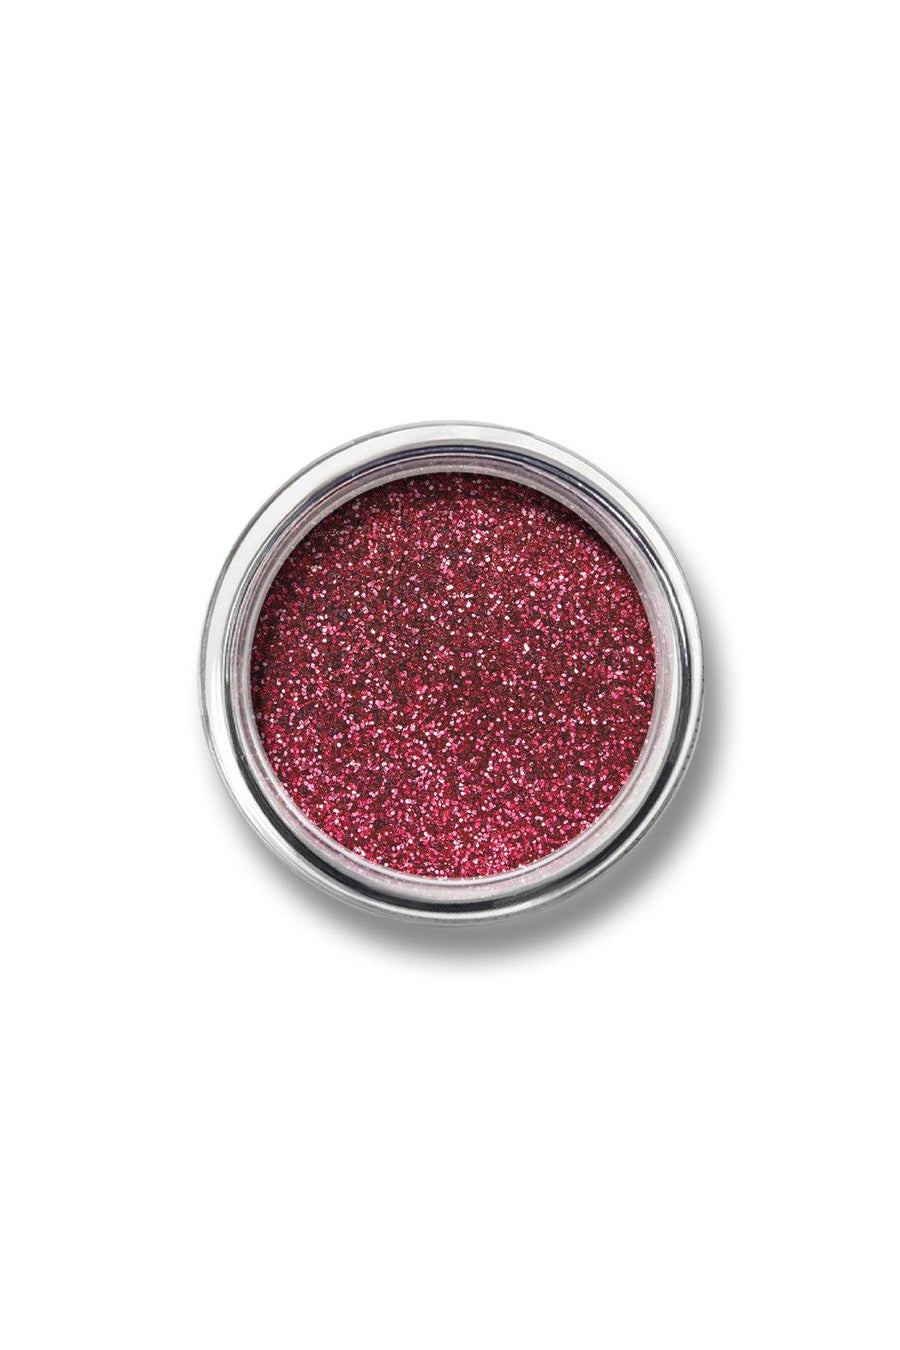 Glitter Powder #8 - Red - Blend Mineral Cosmetics